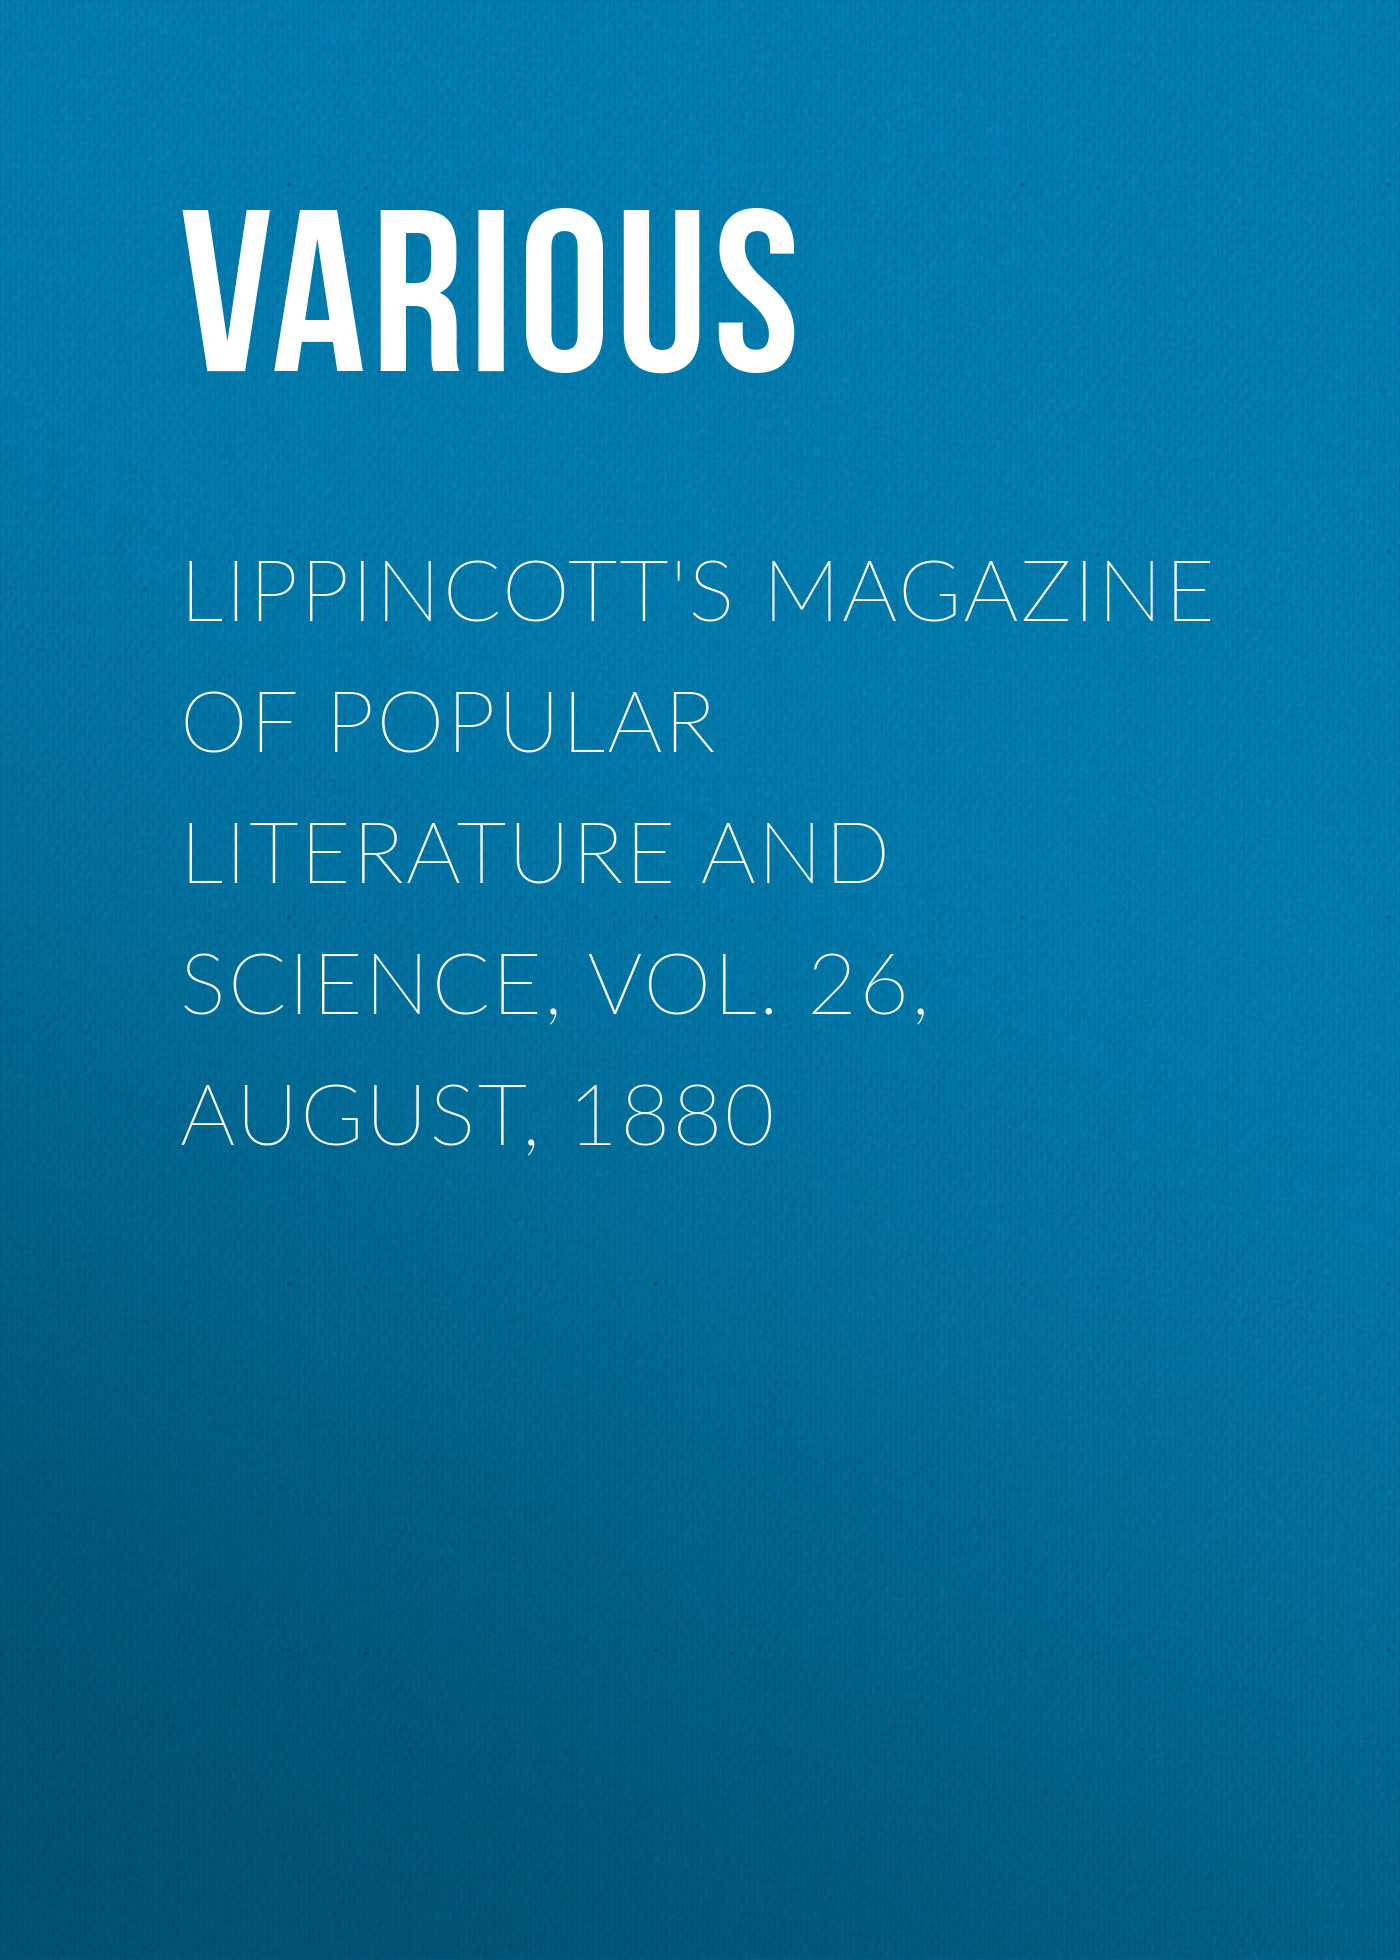 Various Lippincott's Magazine of Popular Literature and Science, Vol. 26, August, 1880 ec weird science vol 1